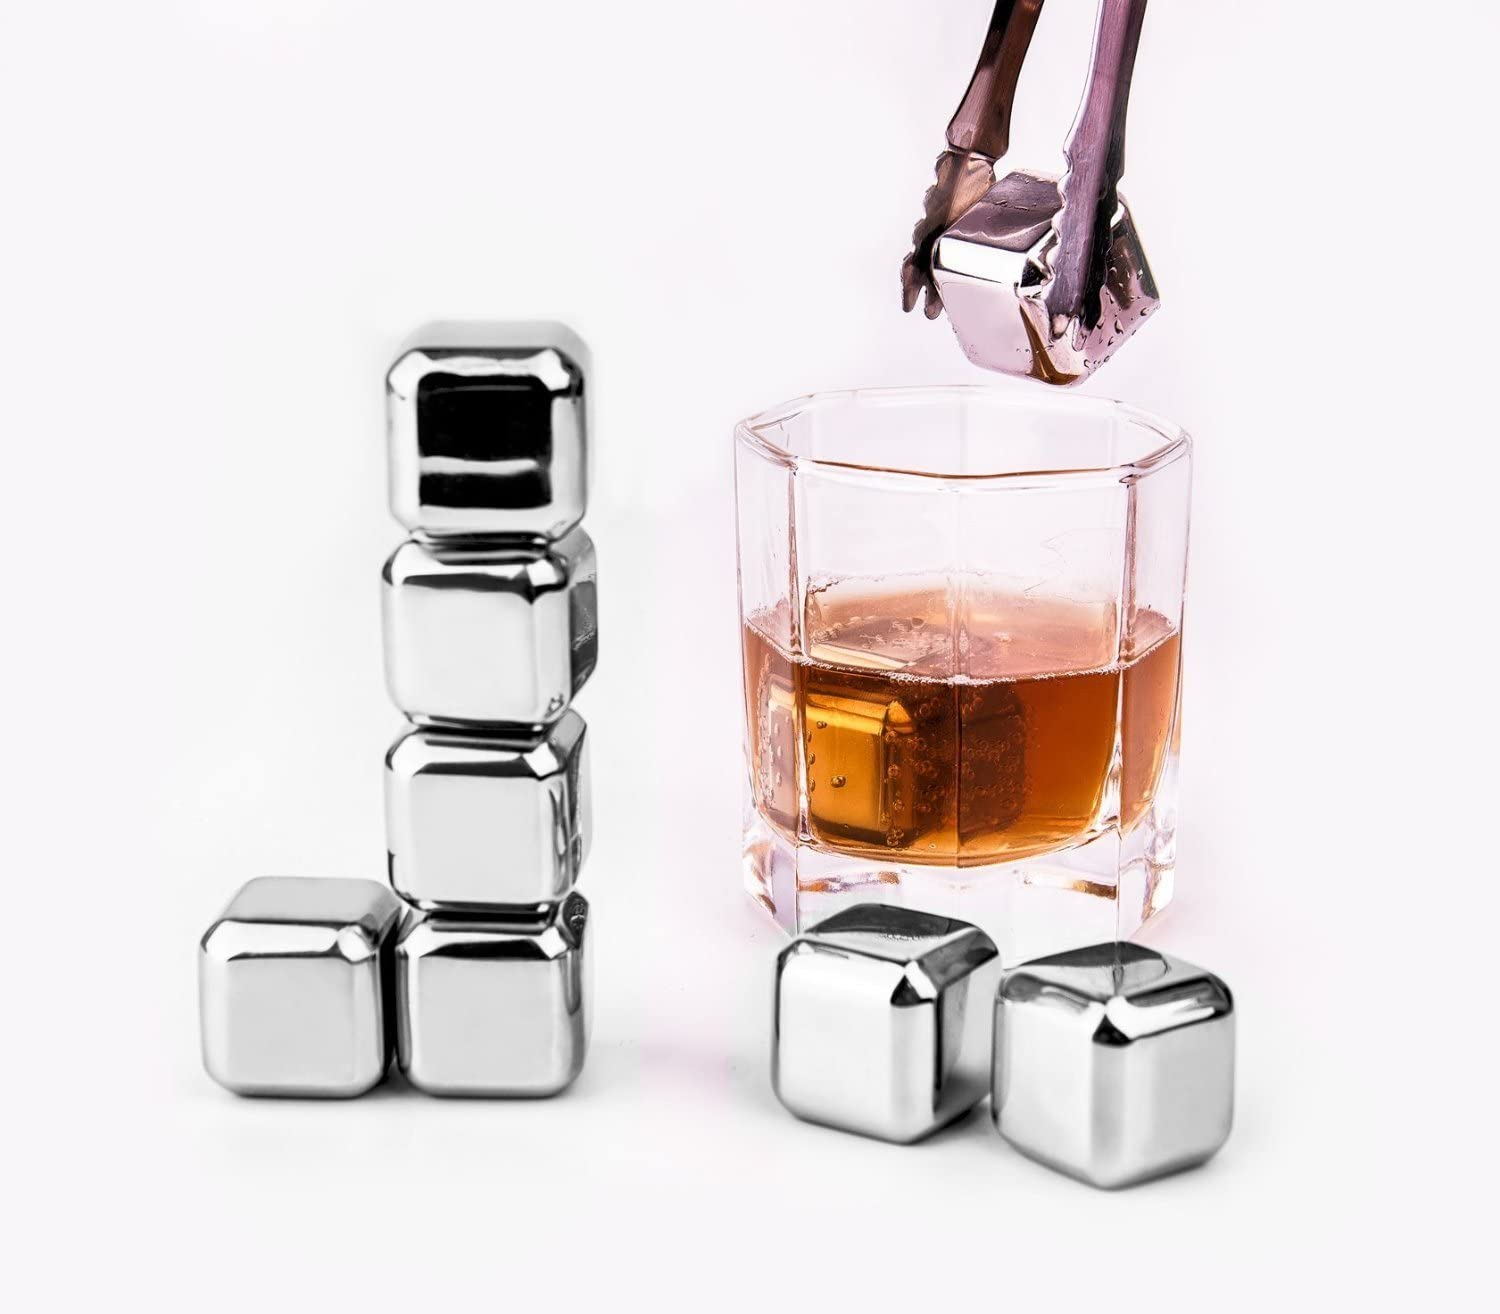 Whiskey Stones - Wecookez Set of 8 with Plastic Storage Box Tongs, Stainless Steel Reusable Wine Ice Cubes, Whiskey Chilling Rocks and Whisky Stones